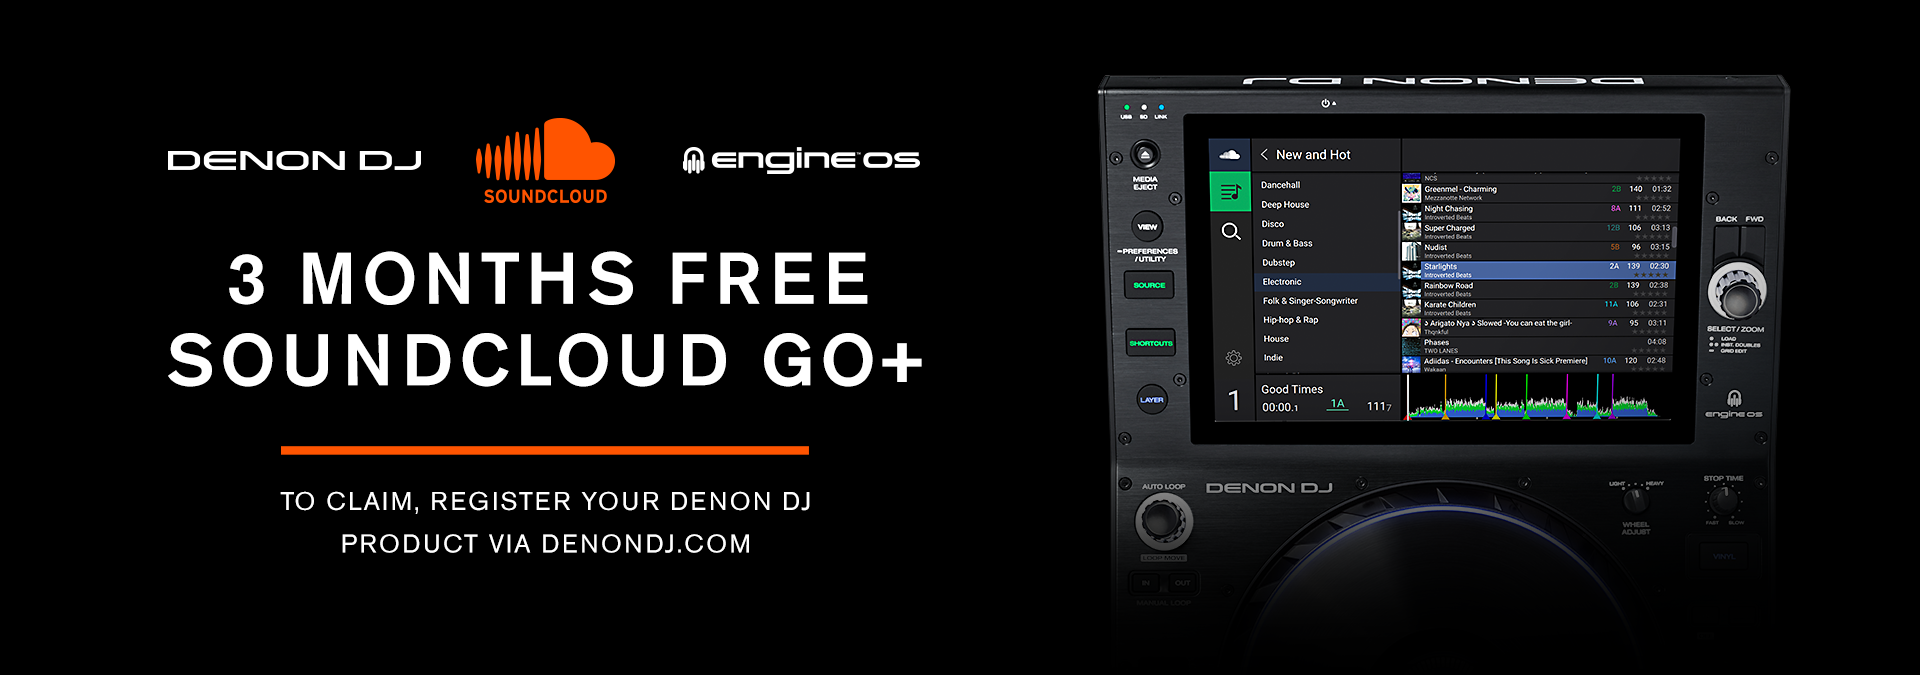 3 months free SOUNDCLOUD GO+ when you register your Denon DJ product via denondj.com